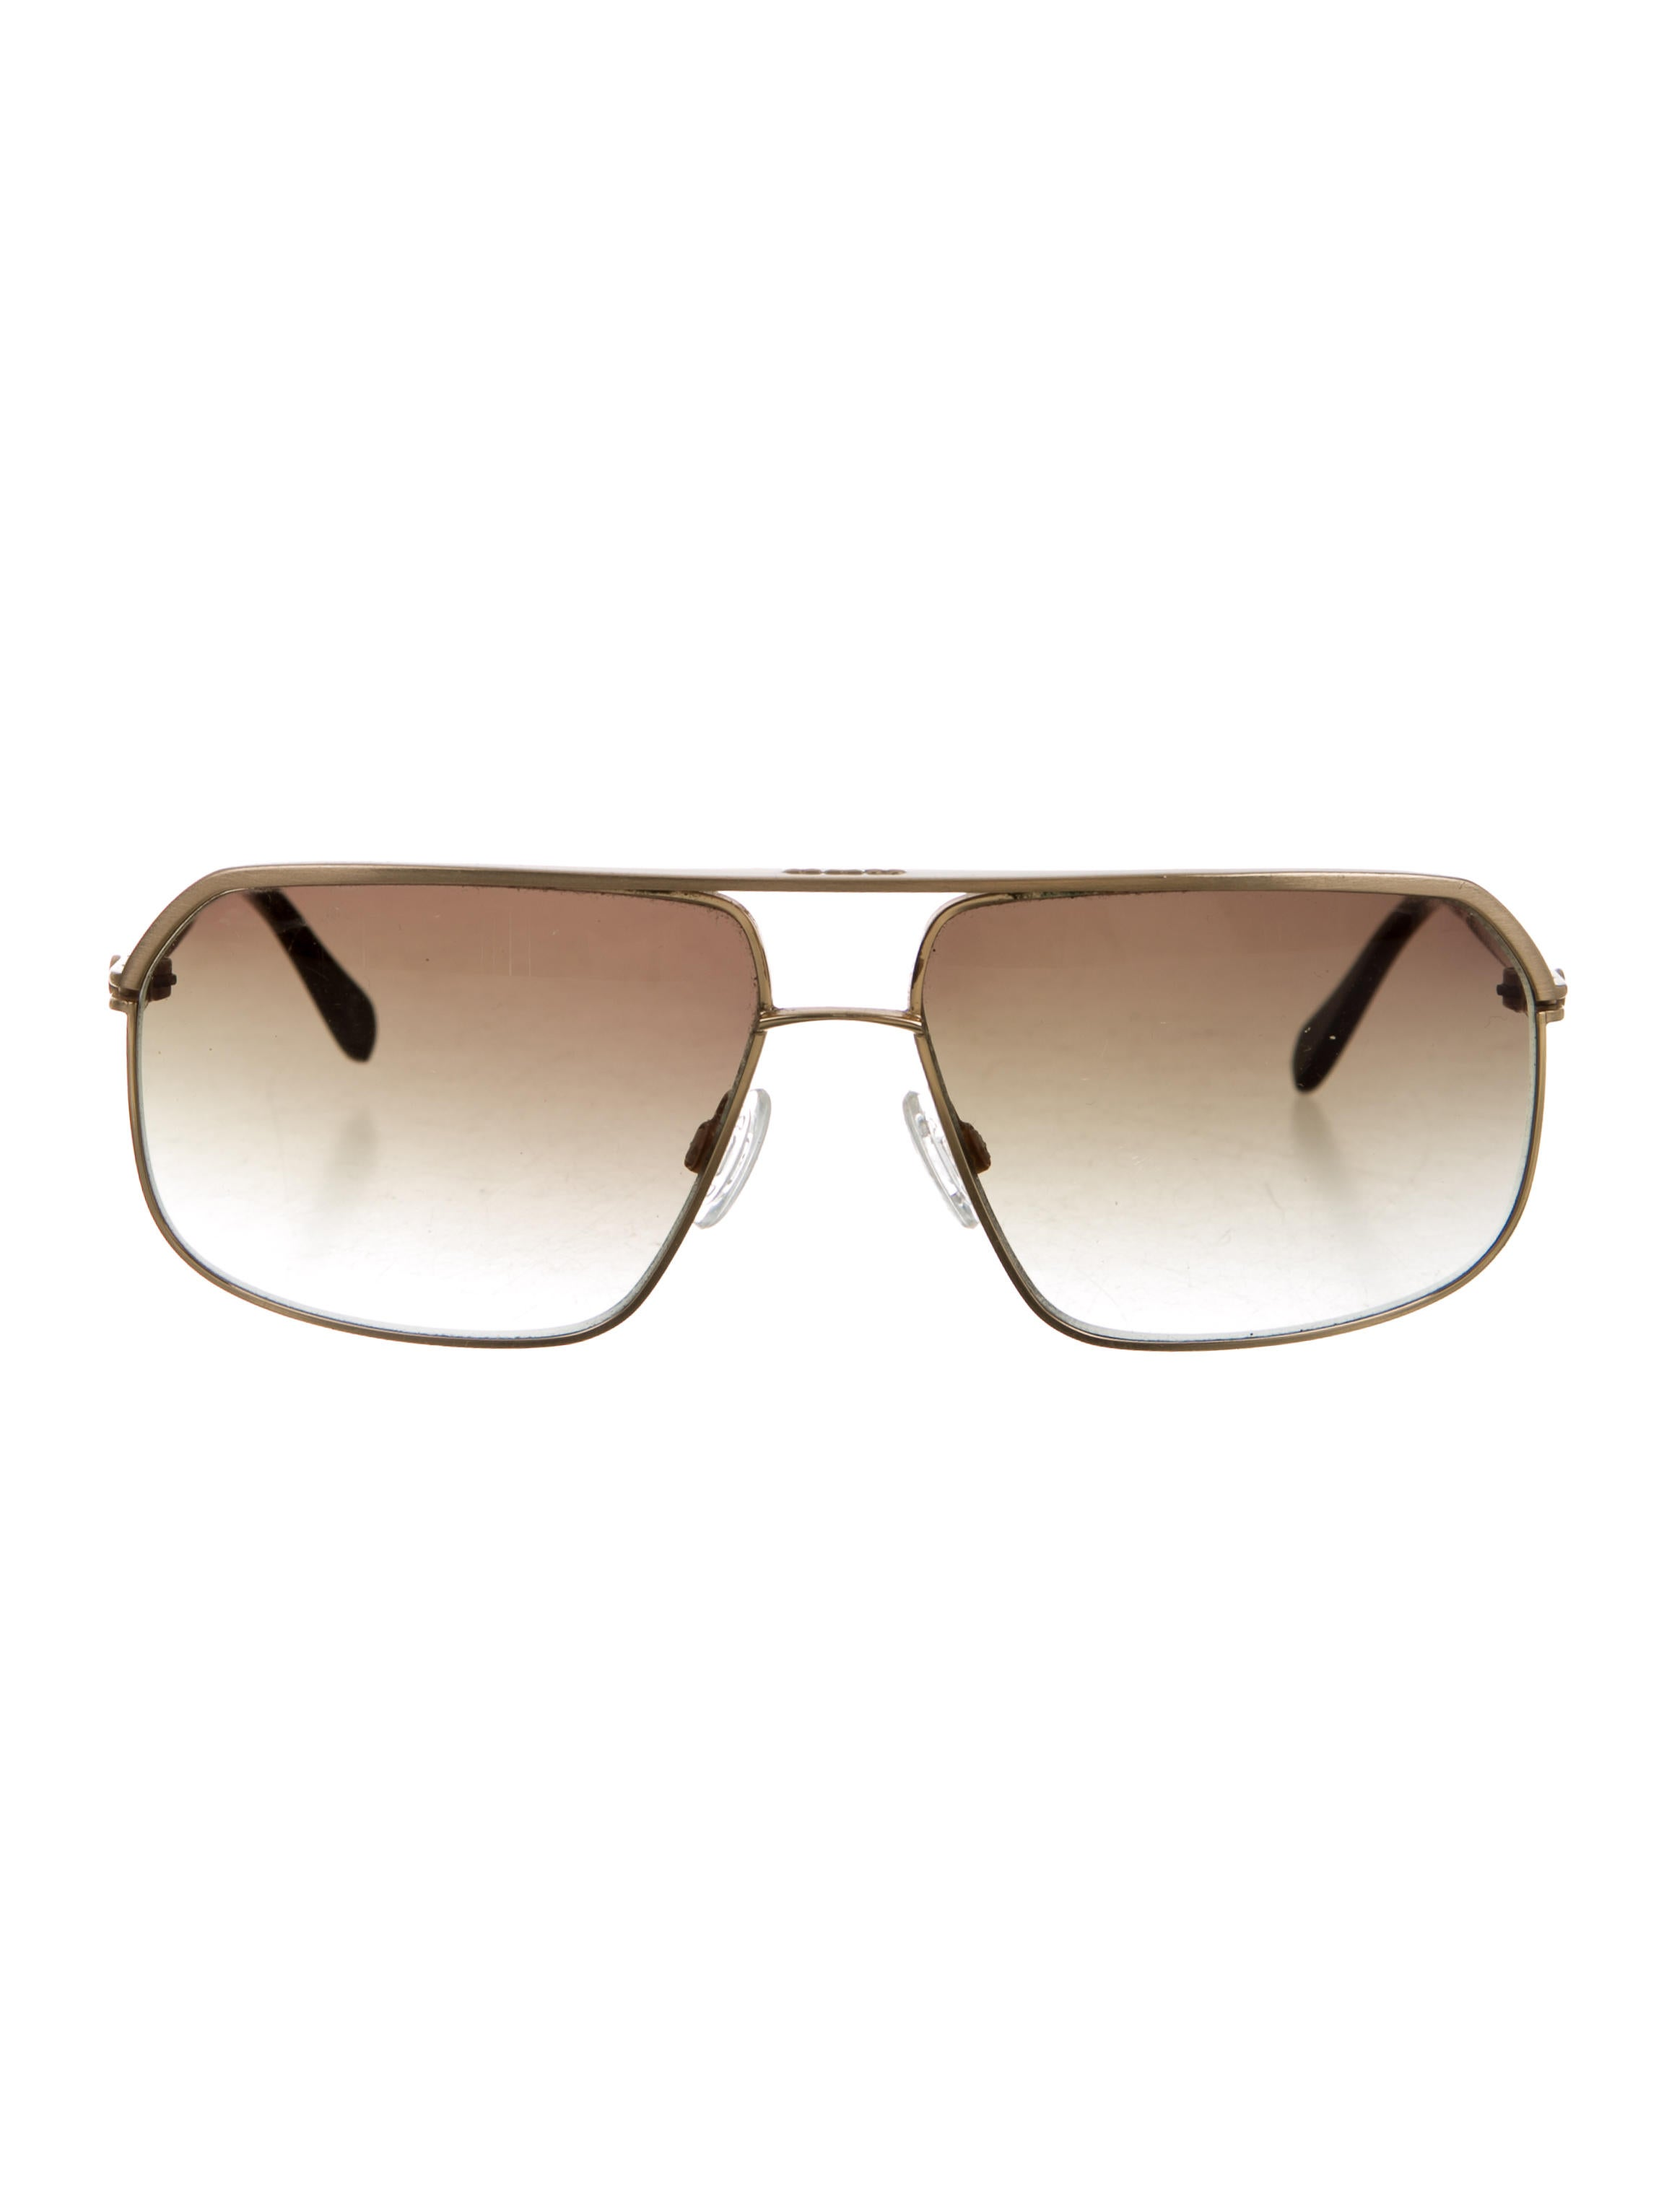 8808720ddb Oliver Peoples Connolly Aviator Sunglasses - Accessories - WOP22910 ...